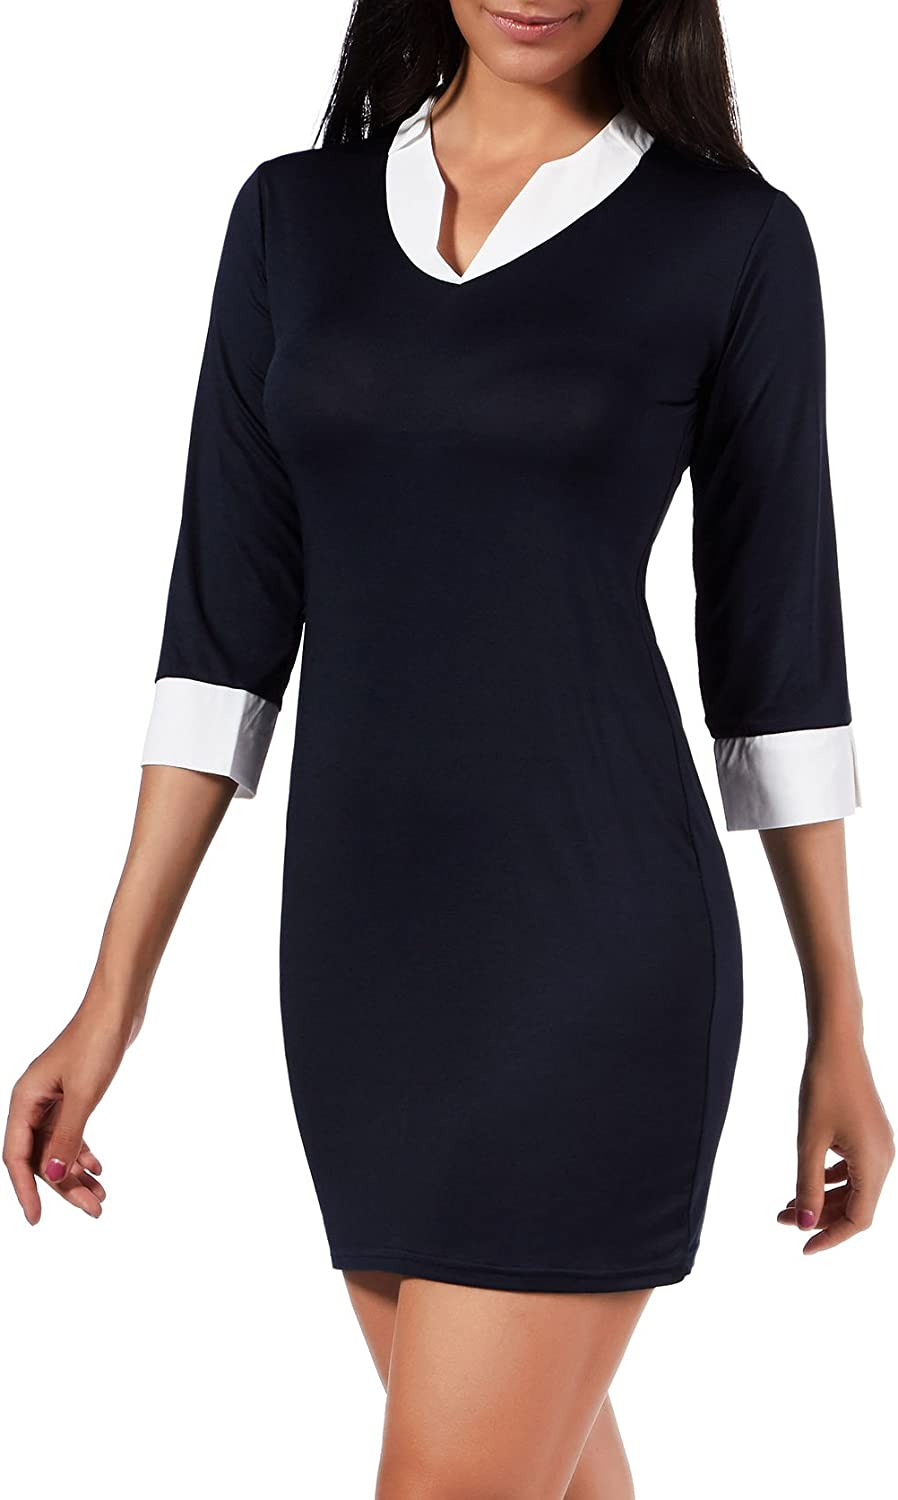 Cocofairy Women's Elegant V Neck 3 4 Sleeve Wear to Work Evening Party Sheath Mini Dress